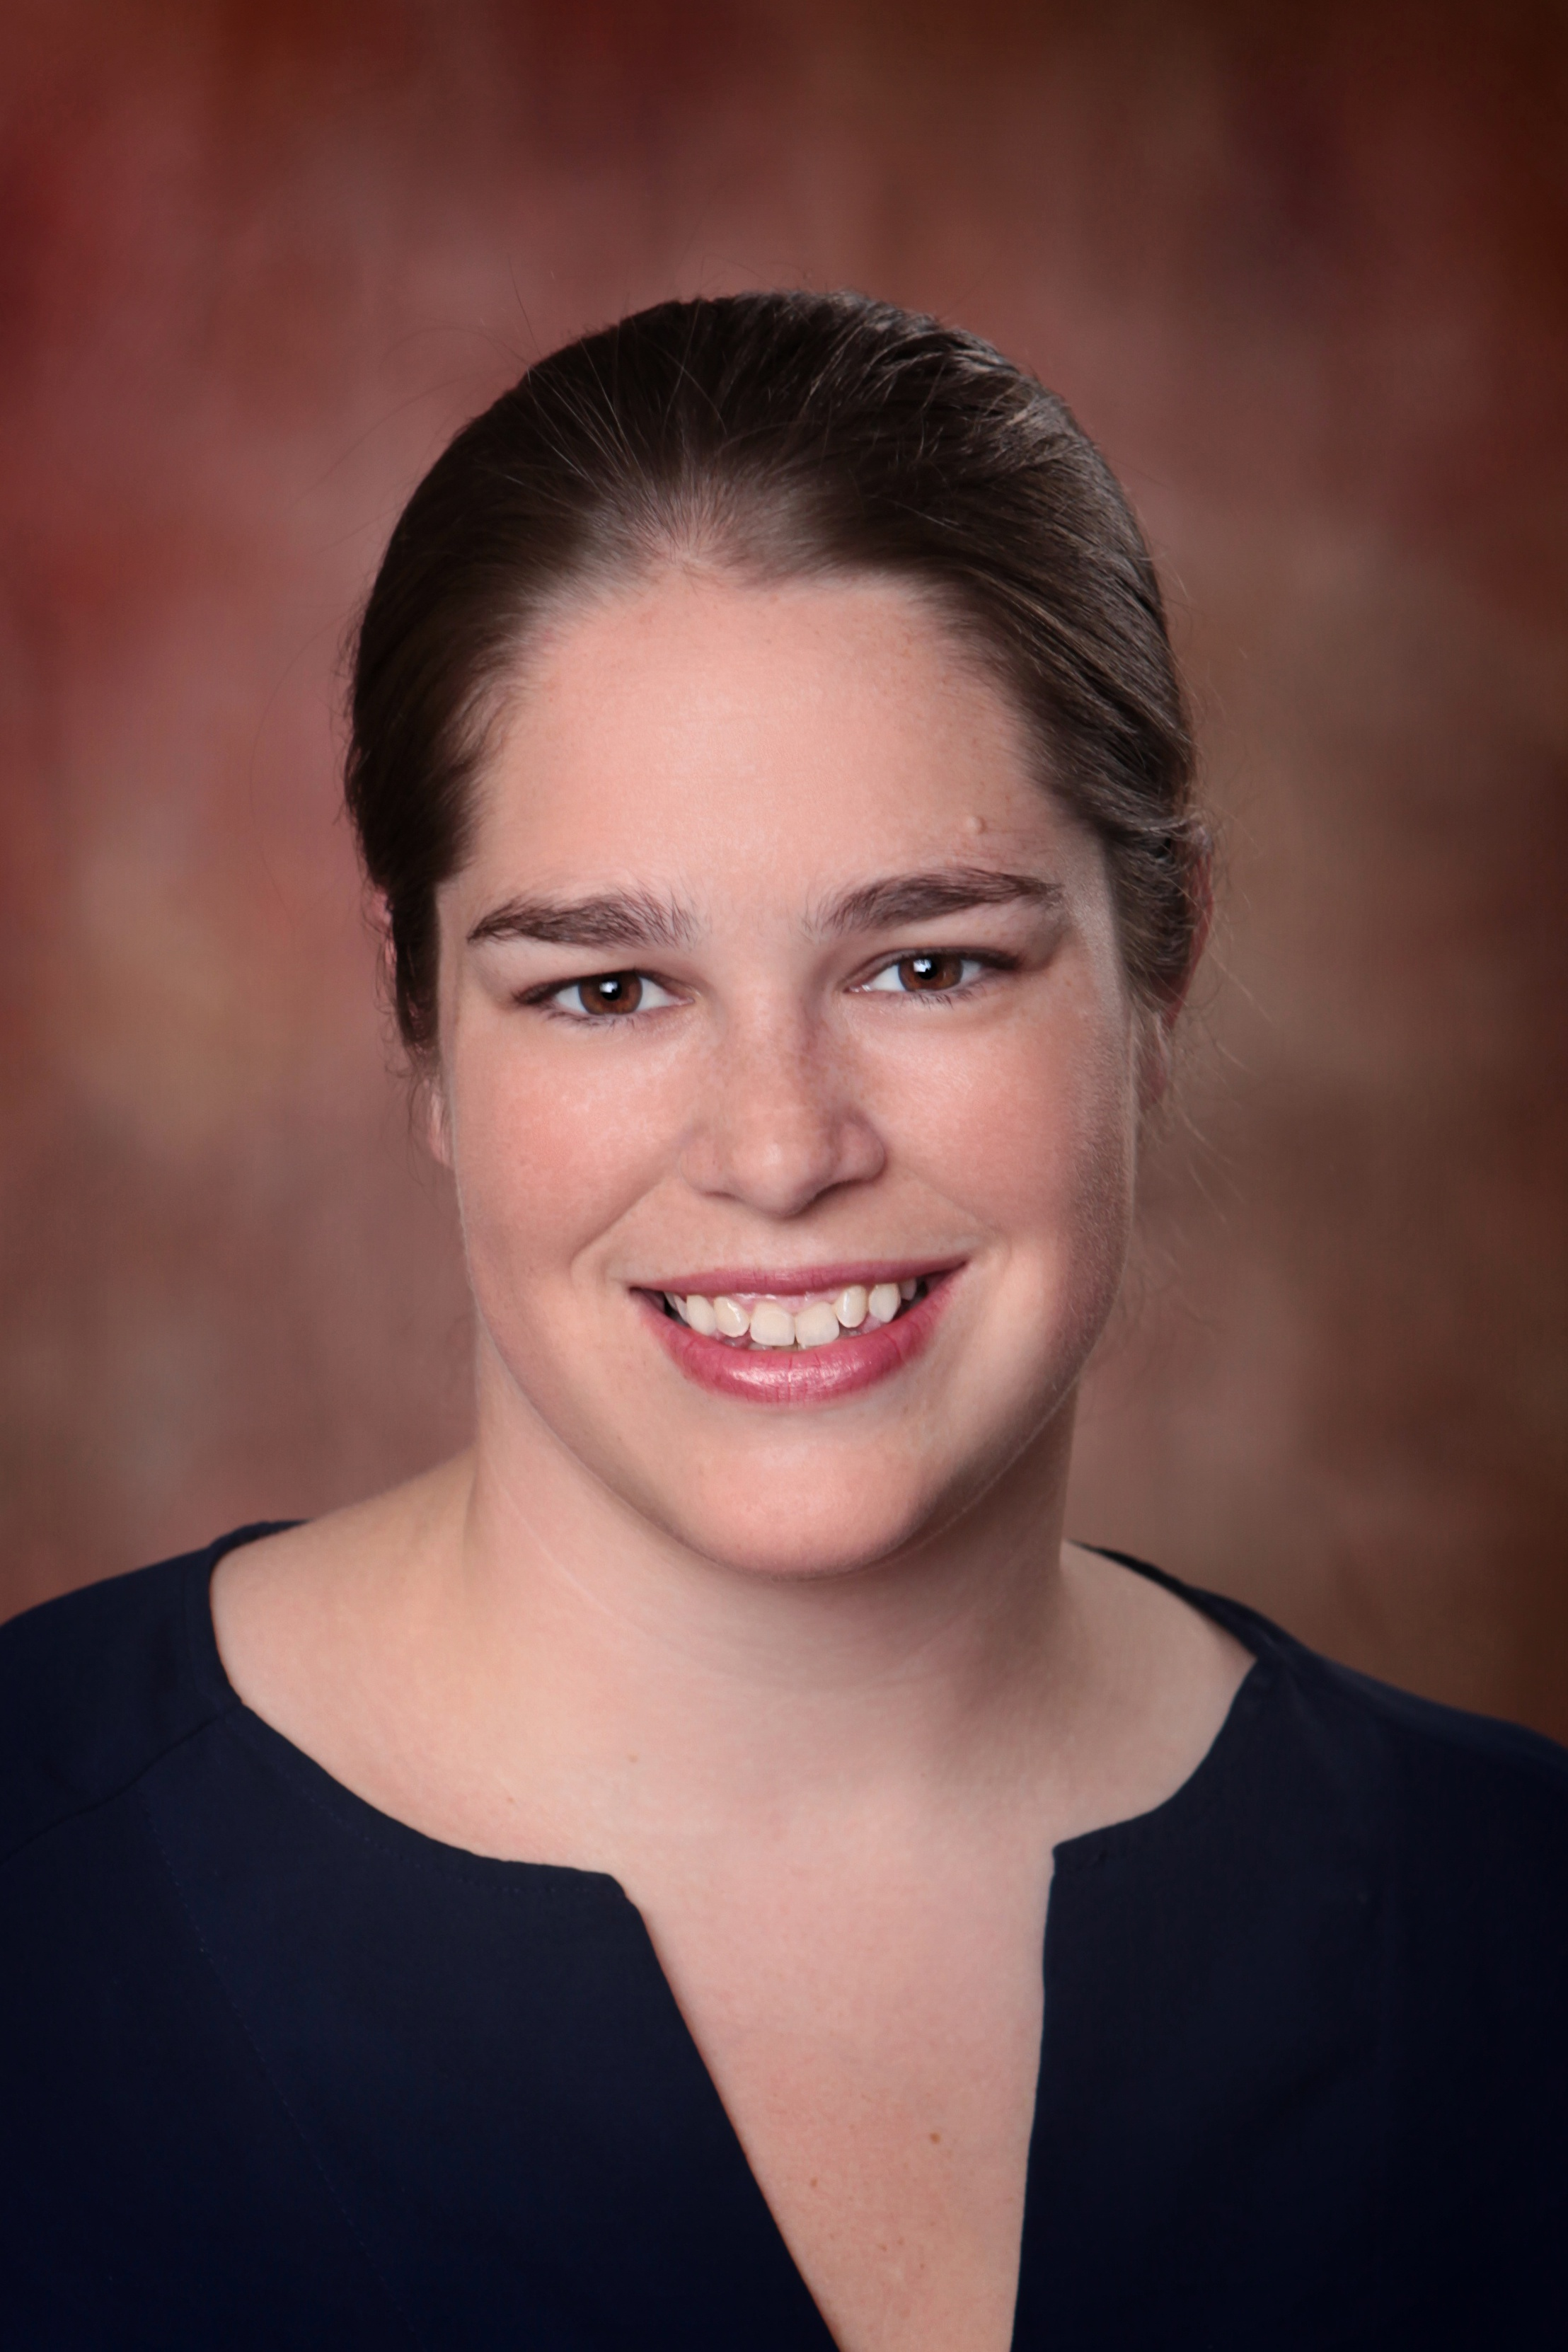 Adeline Bauer, OD, FAAO, FSLS, completed a residency in 2015 and is now with a group OD/MD practice.